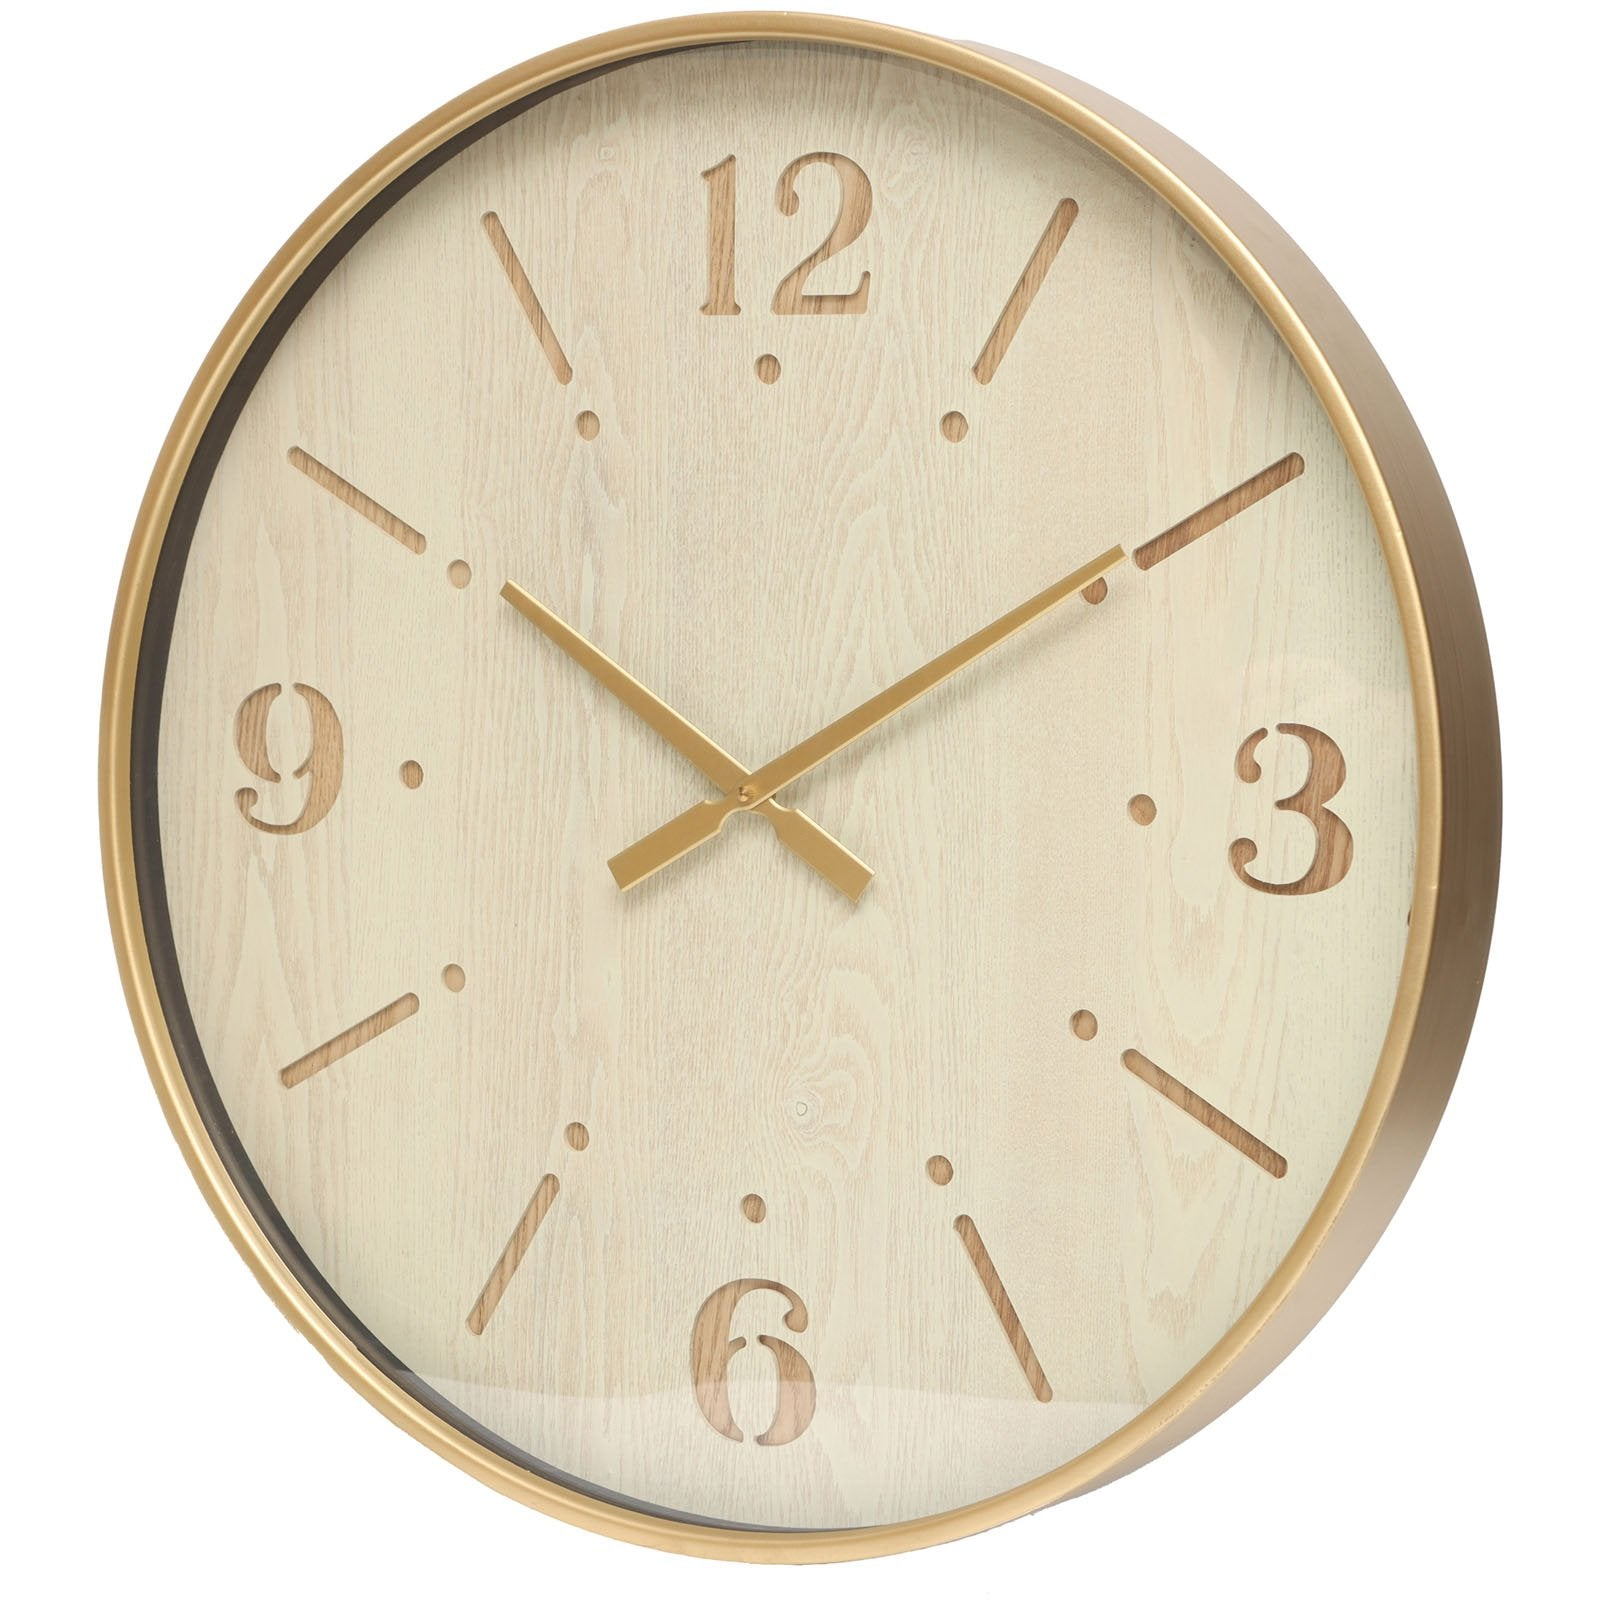 Yearn Aura Distressed Gold Metal Wall Clock 60cm 11731CLK 1